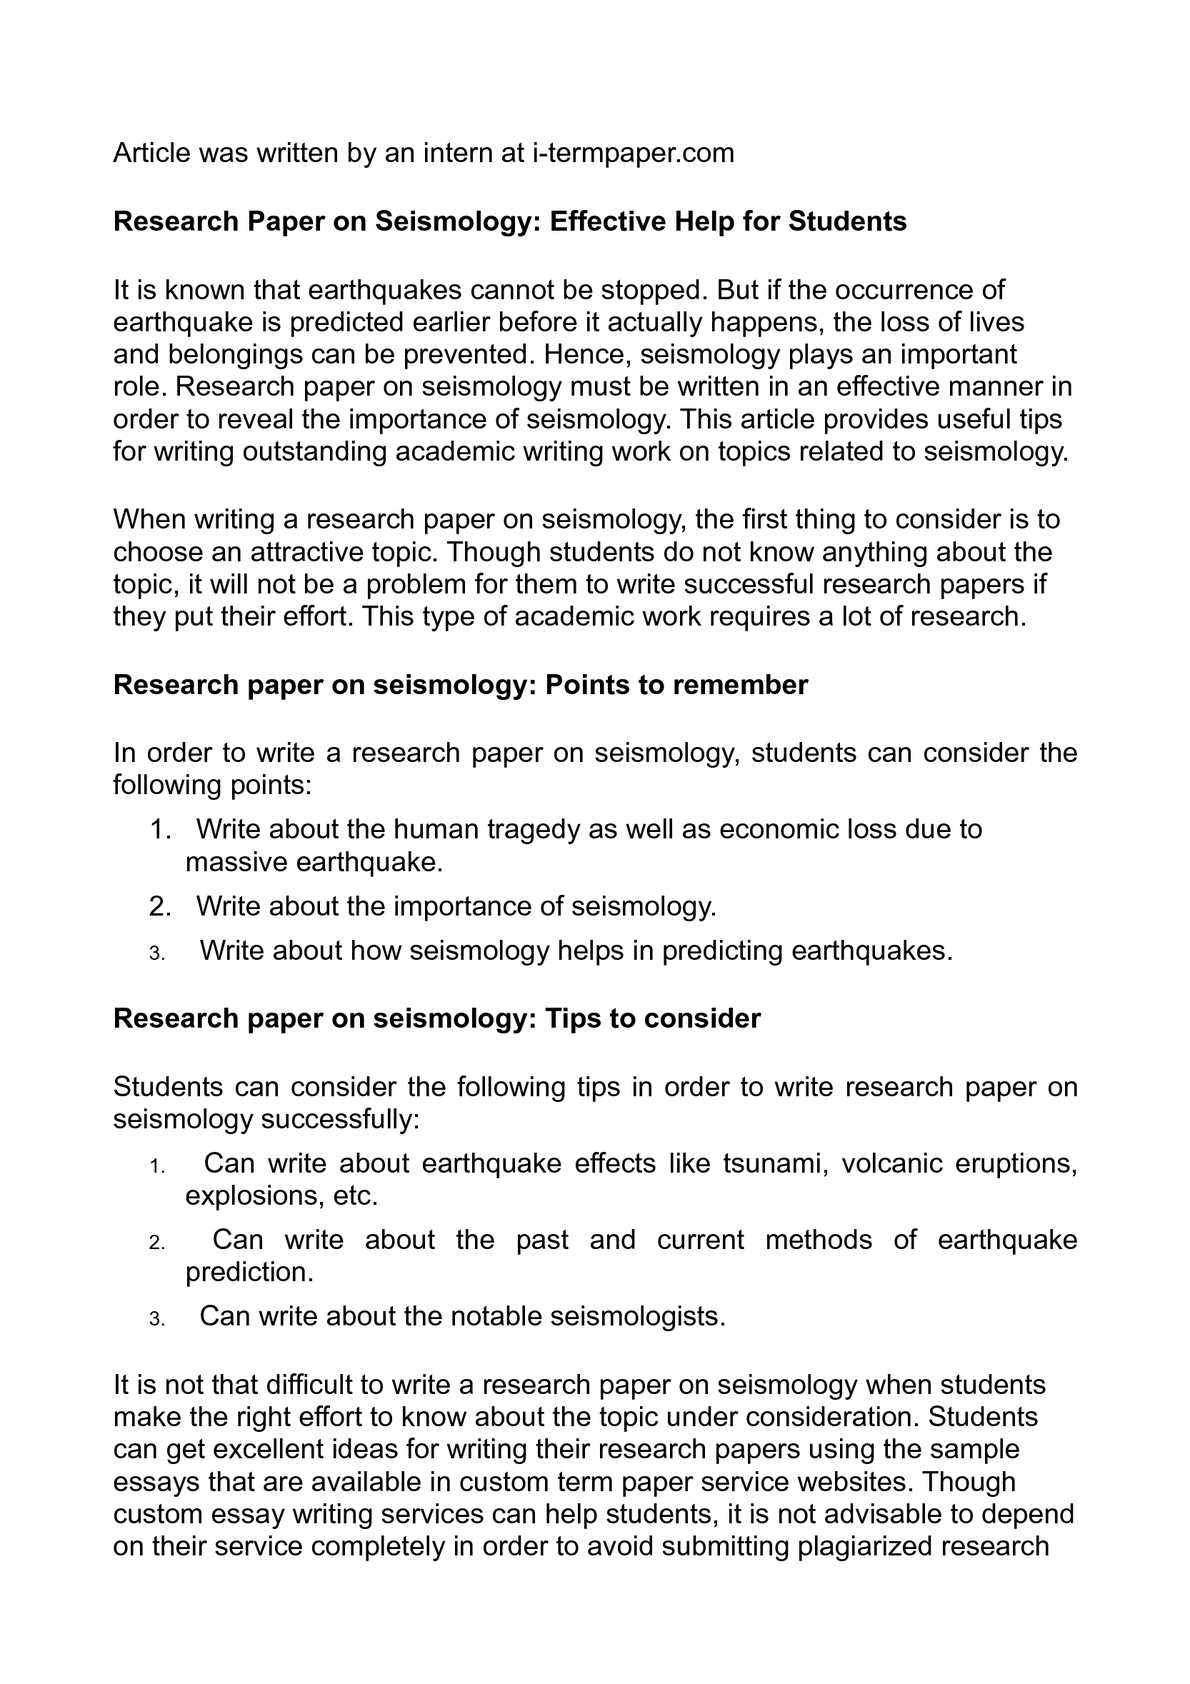 how not to plagiarize in a research paper how not to plagiarize calamatildecopyo research paper on seismology effective help for students how to write plagiarism